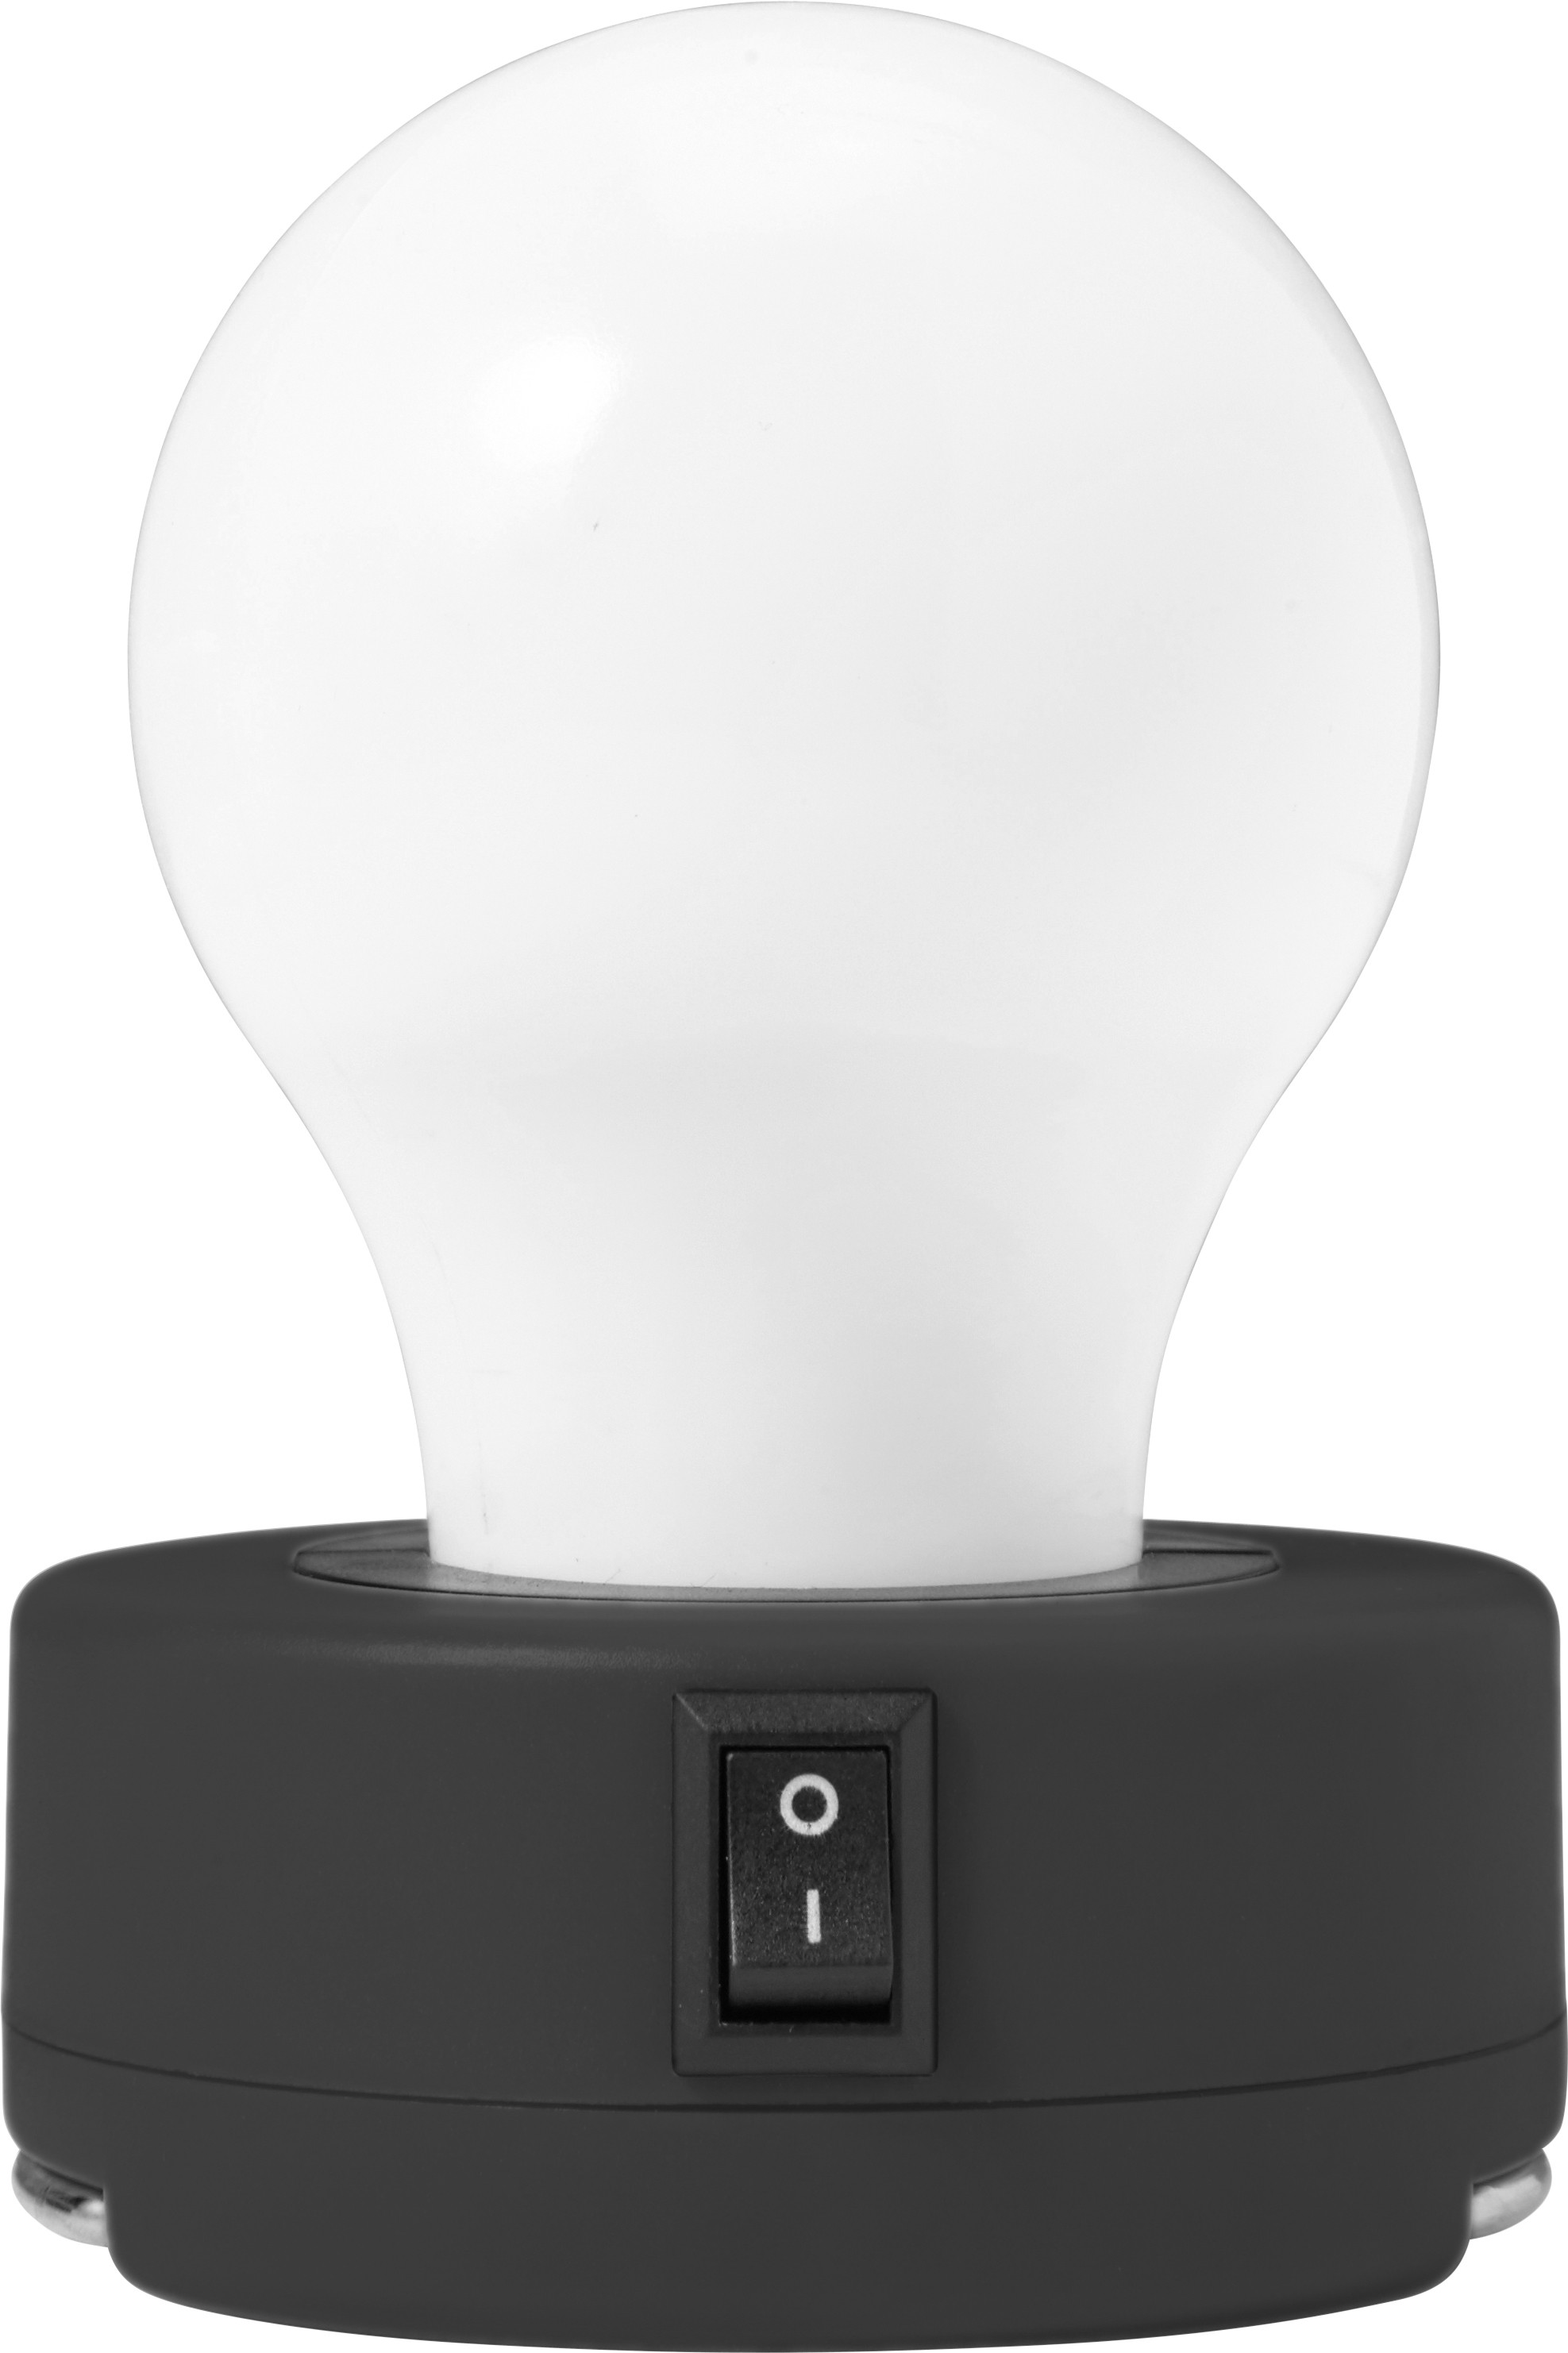 Abs Bulb Light With On Off Switch Black